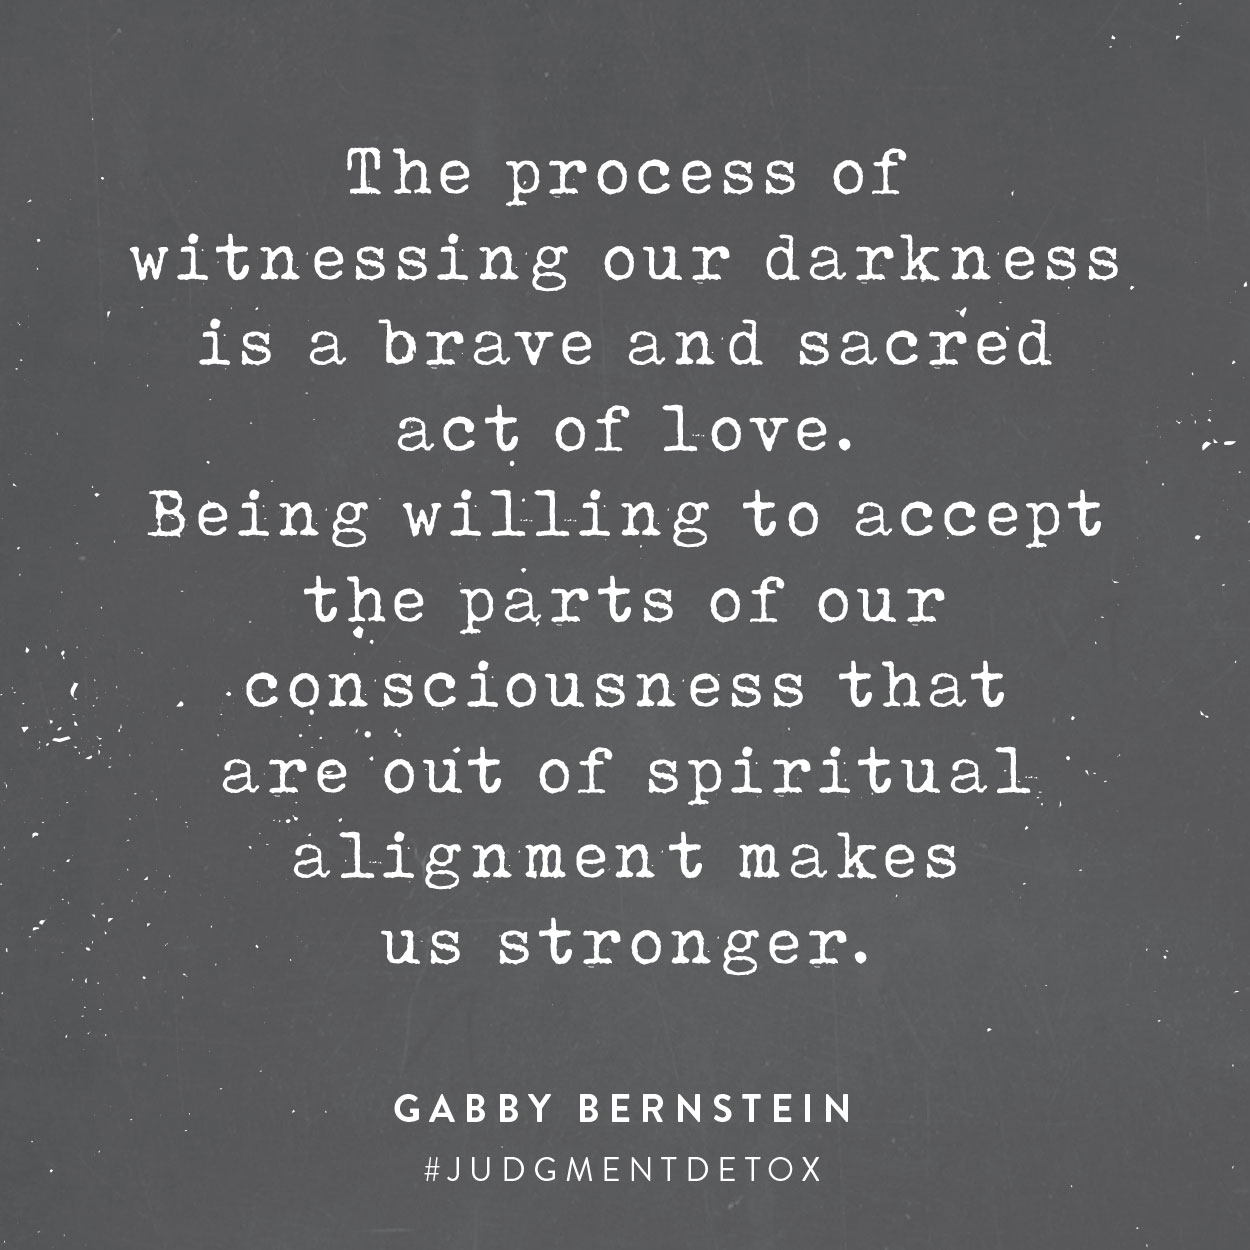 witnessing our darkness is a brave and sacred act of love | gabby bernstein judgment detox